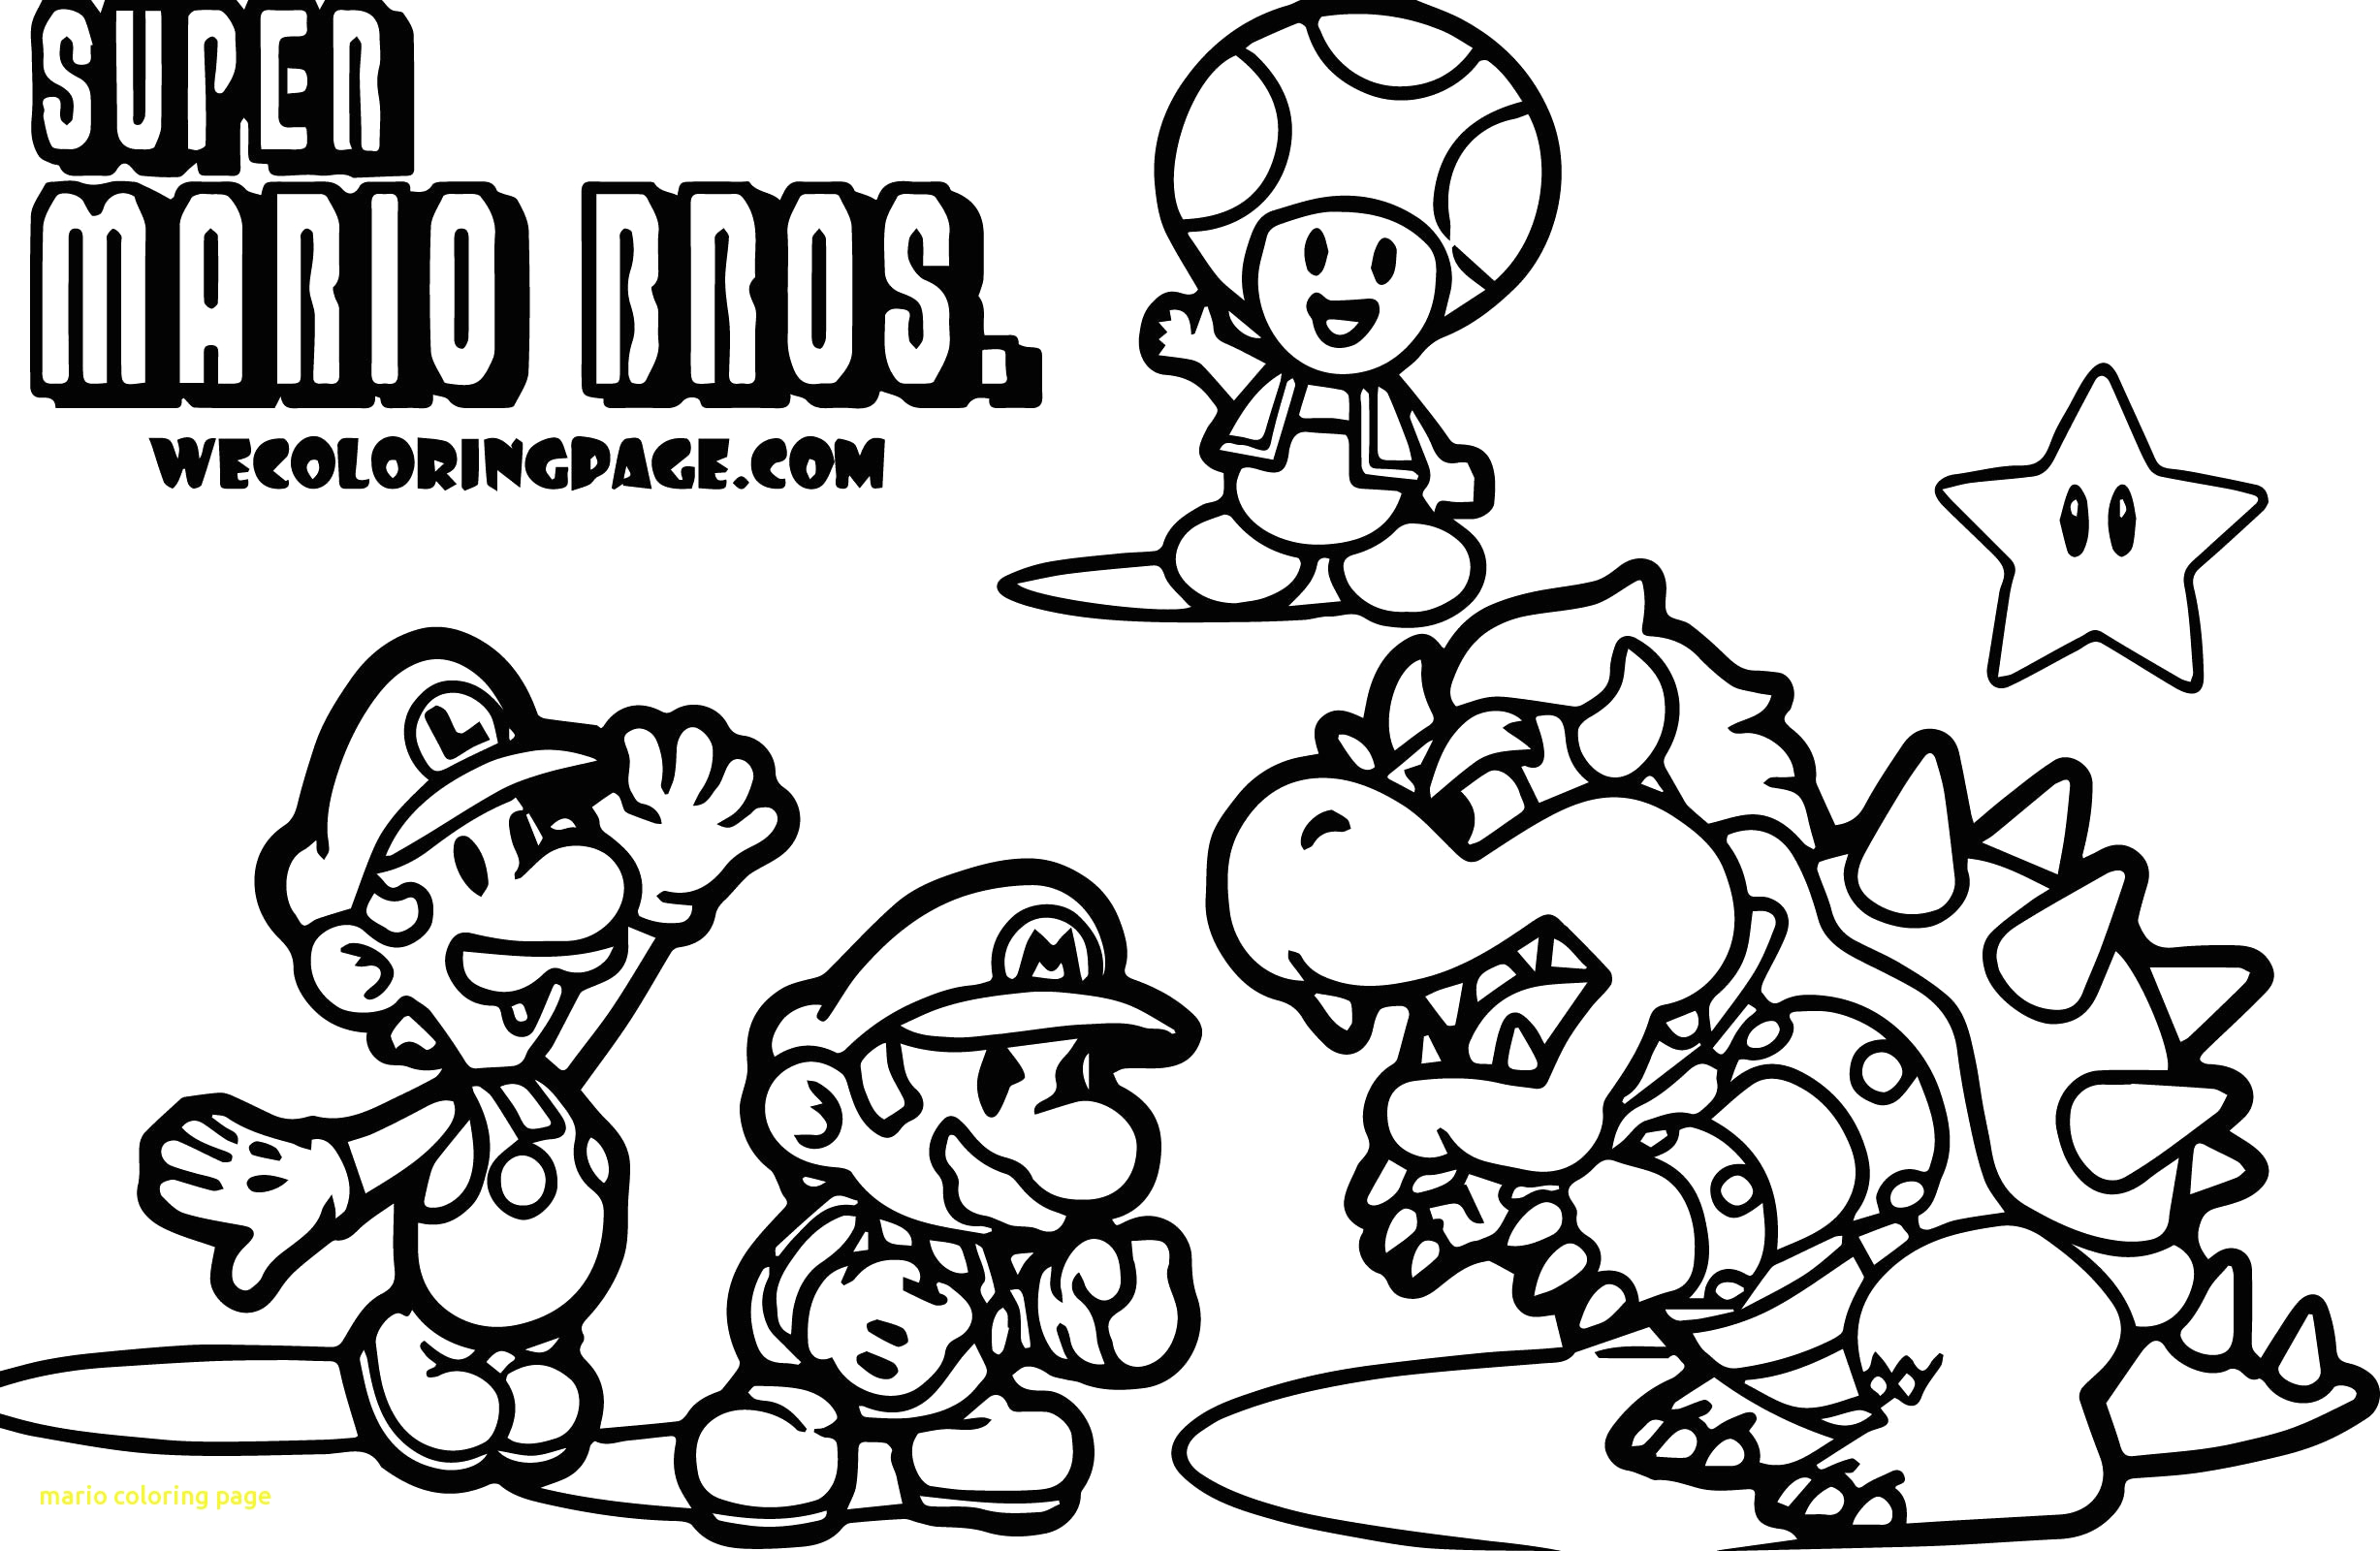 Super Mario Odyssey Coloring Pages to Print Mario Odyssey Coloring Pages at Getcolorings